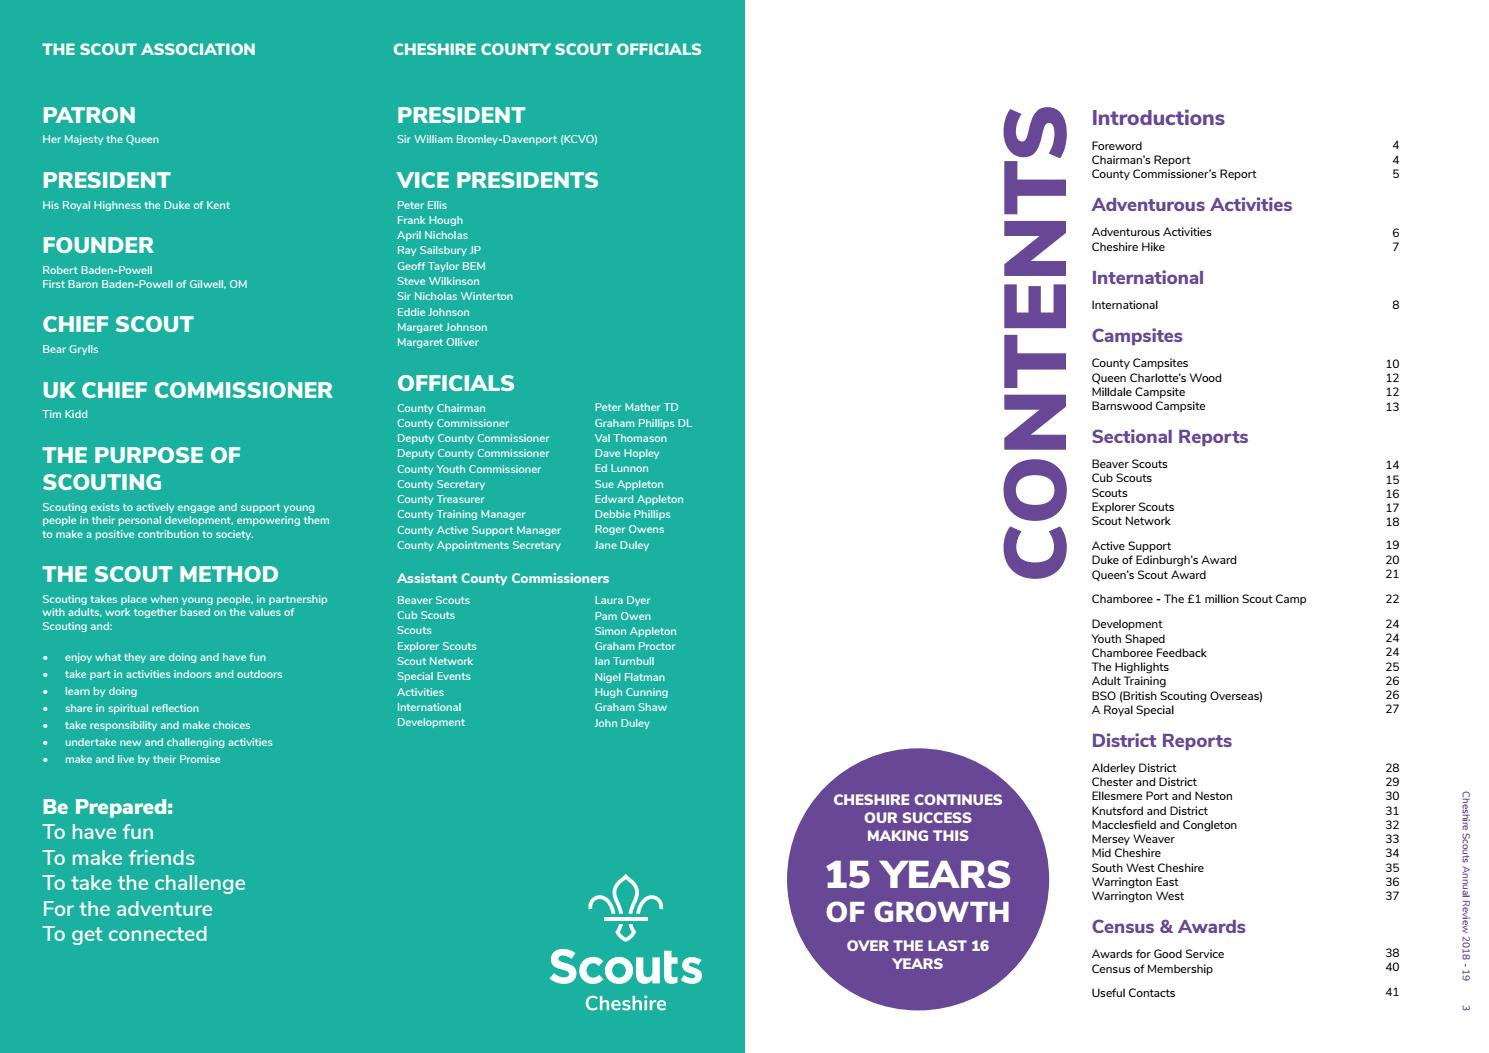 Cheshire Scouts Annual Review 2018-2019 by Cheshire Scouts